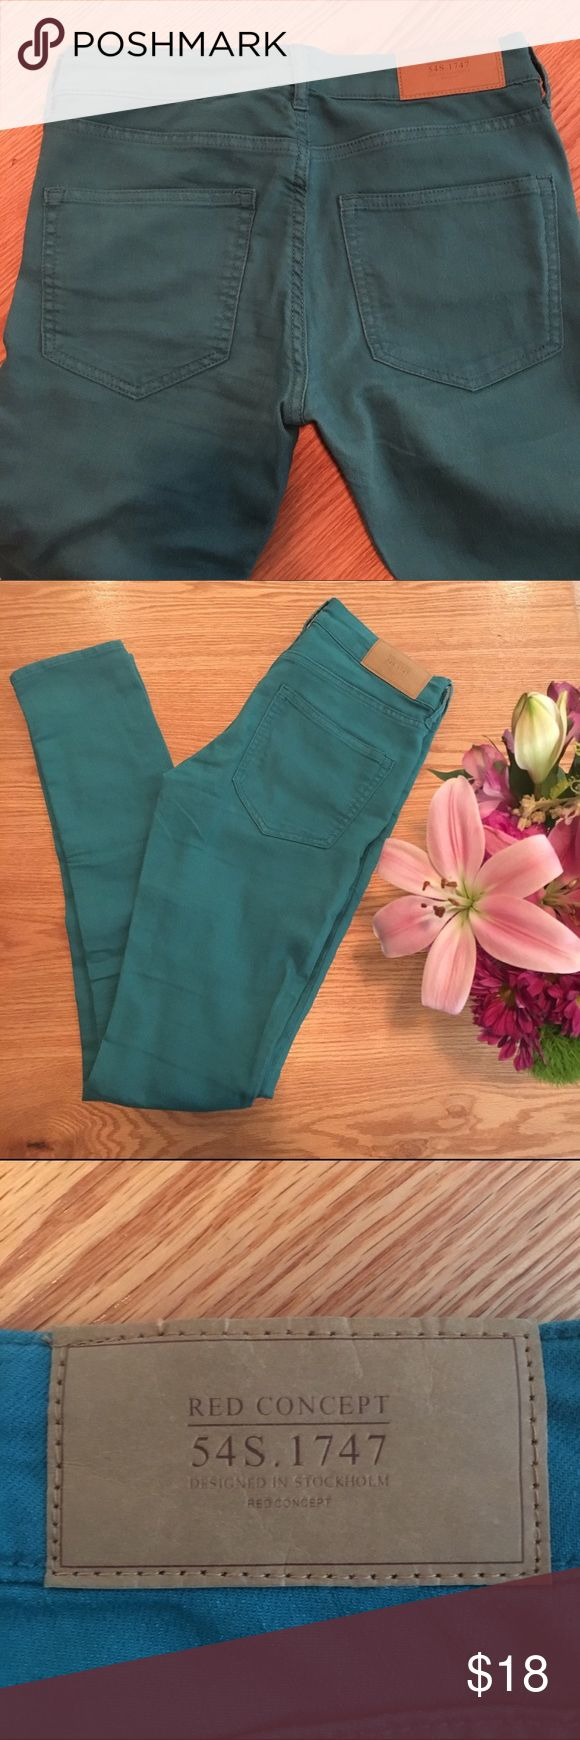 H&M Divided Teal skinny jeans Great condition, fun color jeans! US size 6 H&M Jeans Skinny